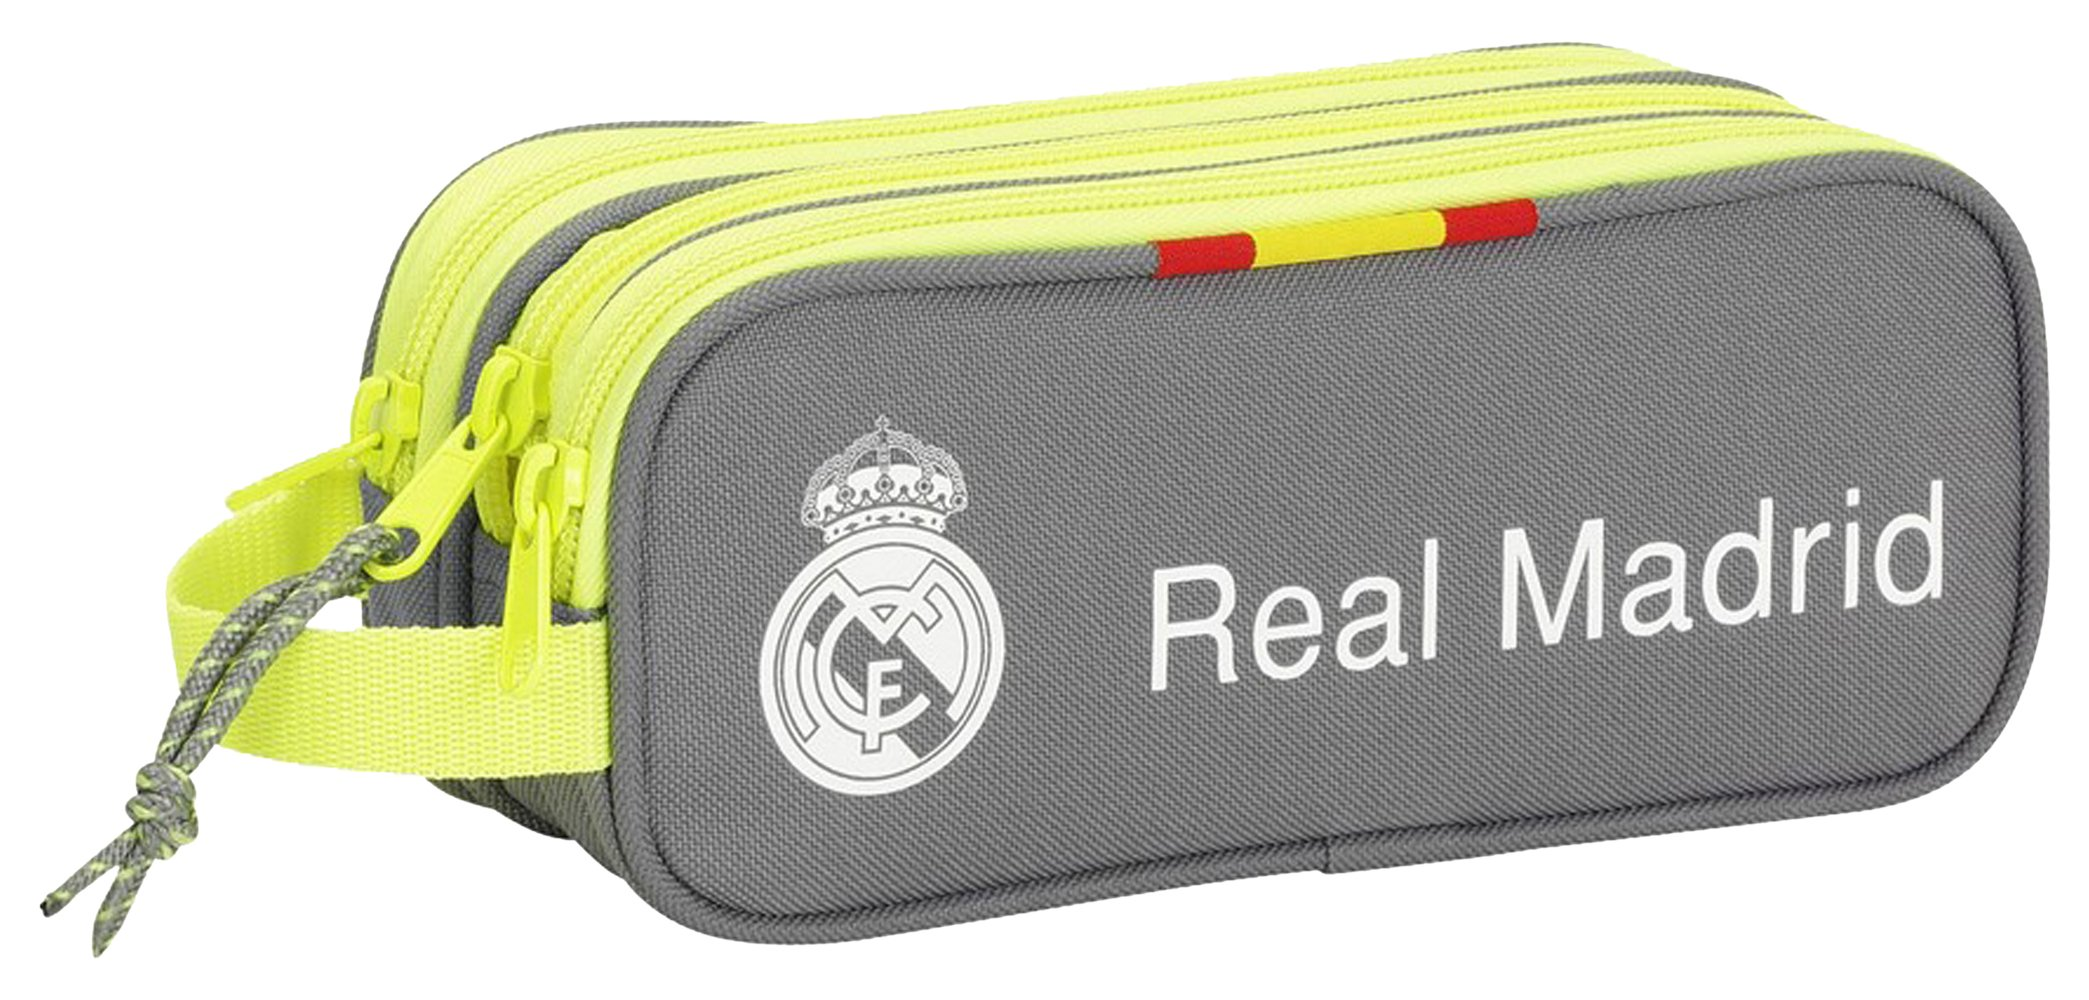 Real Madrid – Portatodo Triple, 21 x 9 x 7 cm (SAFTA 811554635)